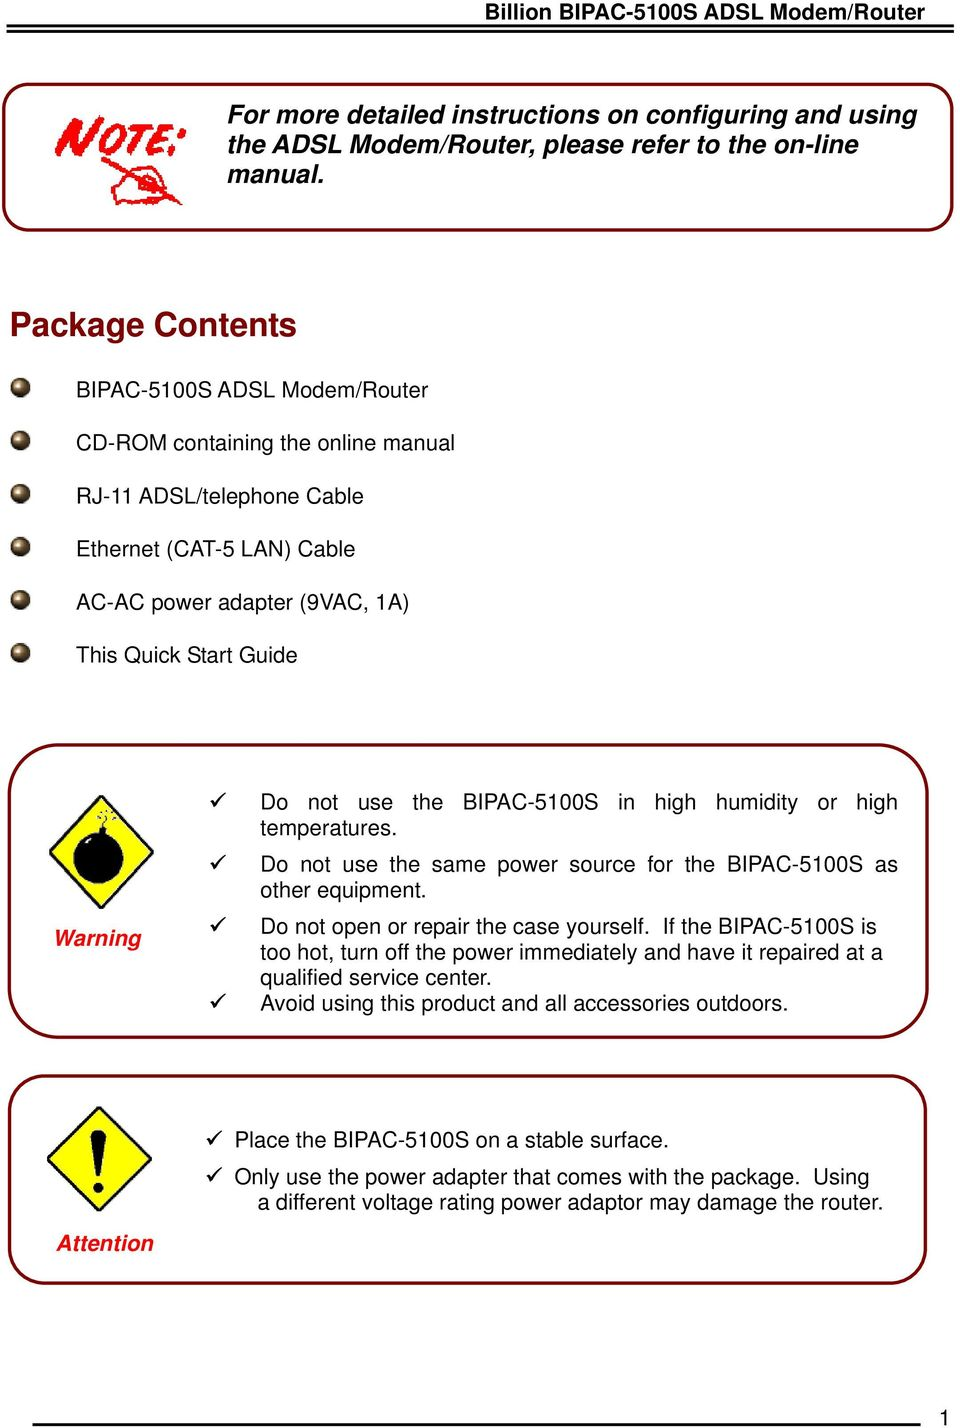 Do not use the BIPAC-5100S in high humidity or high temperatures. Do not use the same power source for the BIPAC-5100S as other equipment. Do not open or repair the case yourself.